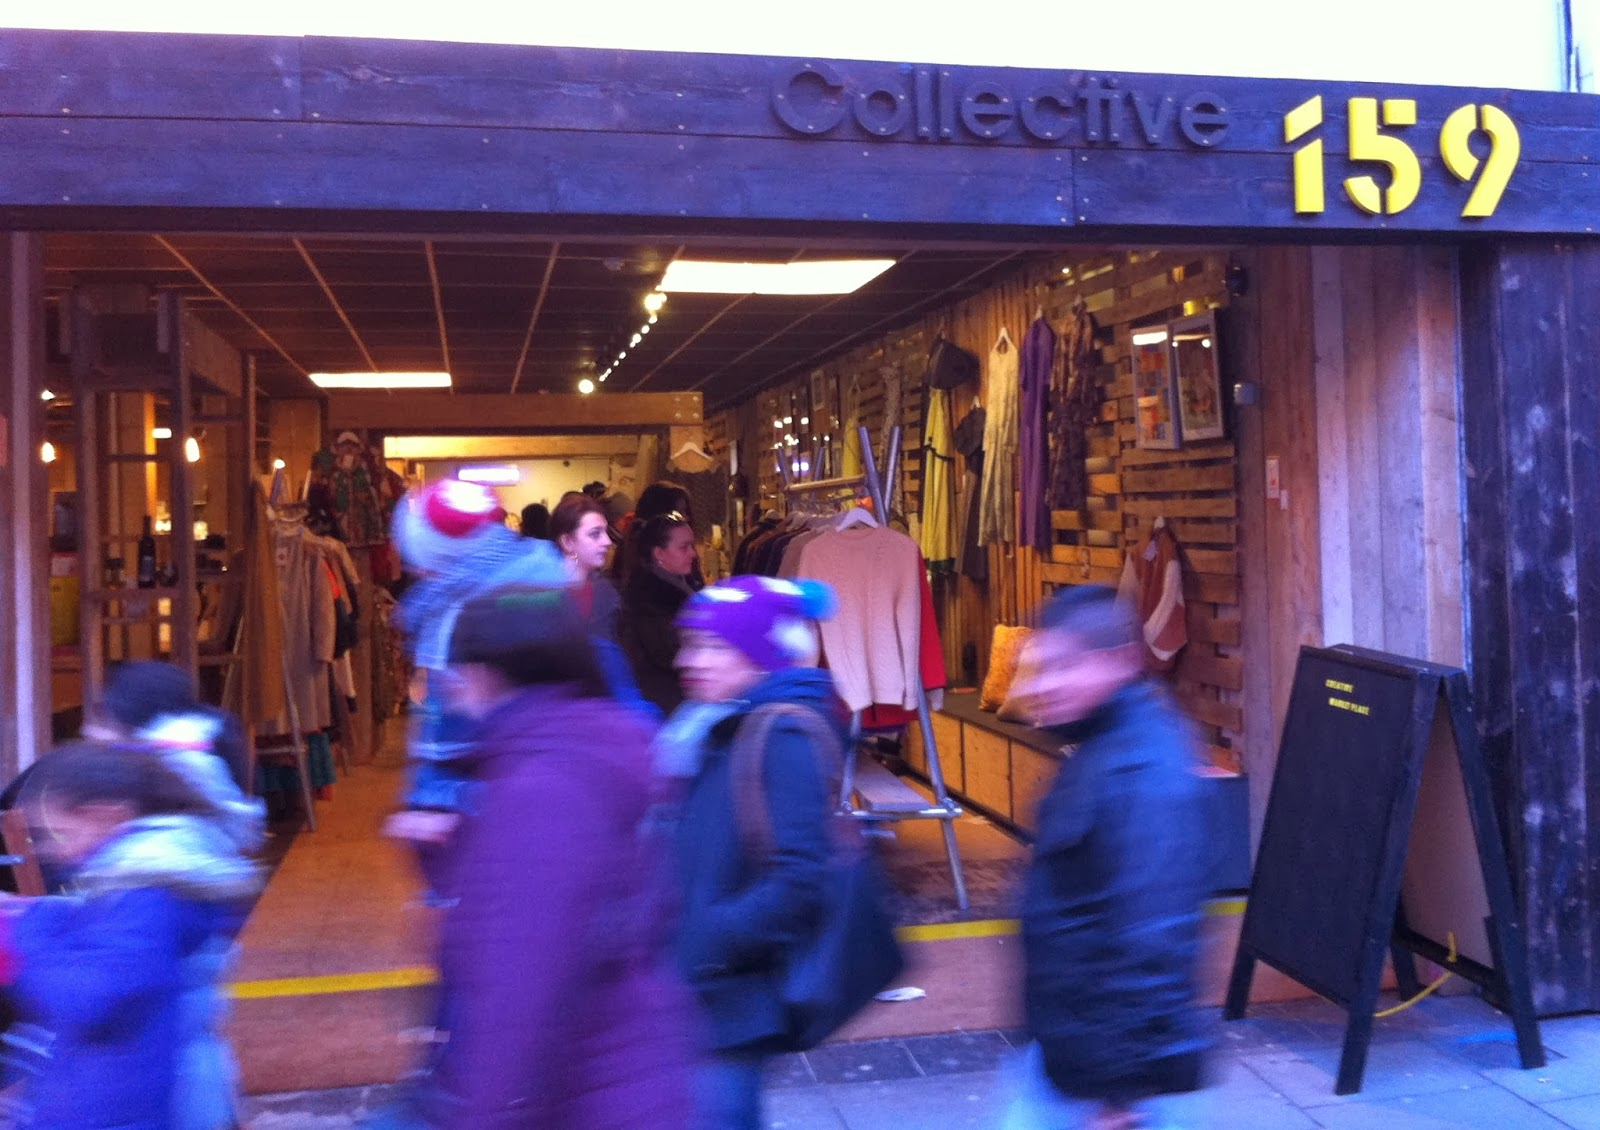 Camden Collective C/159